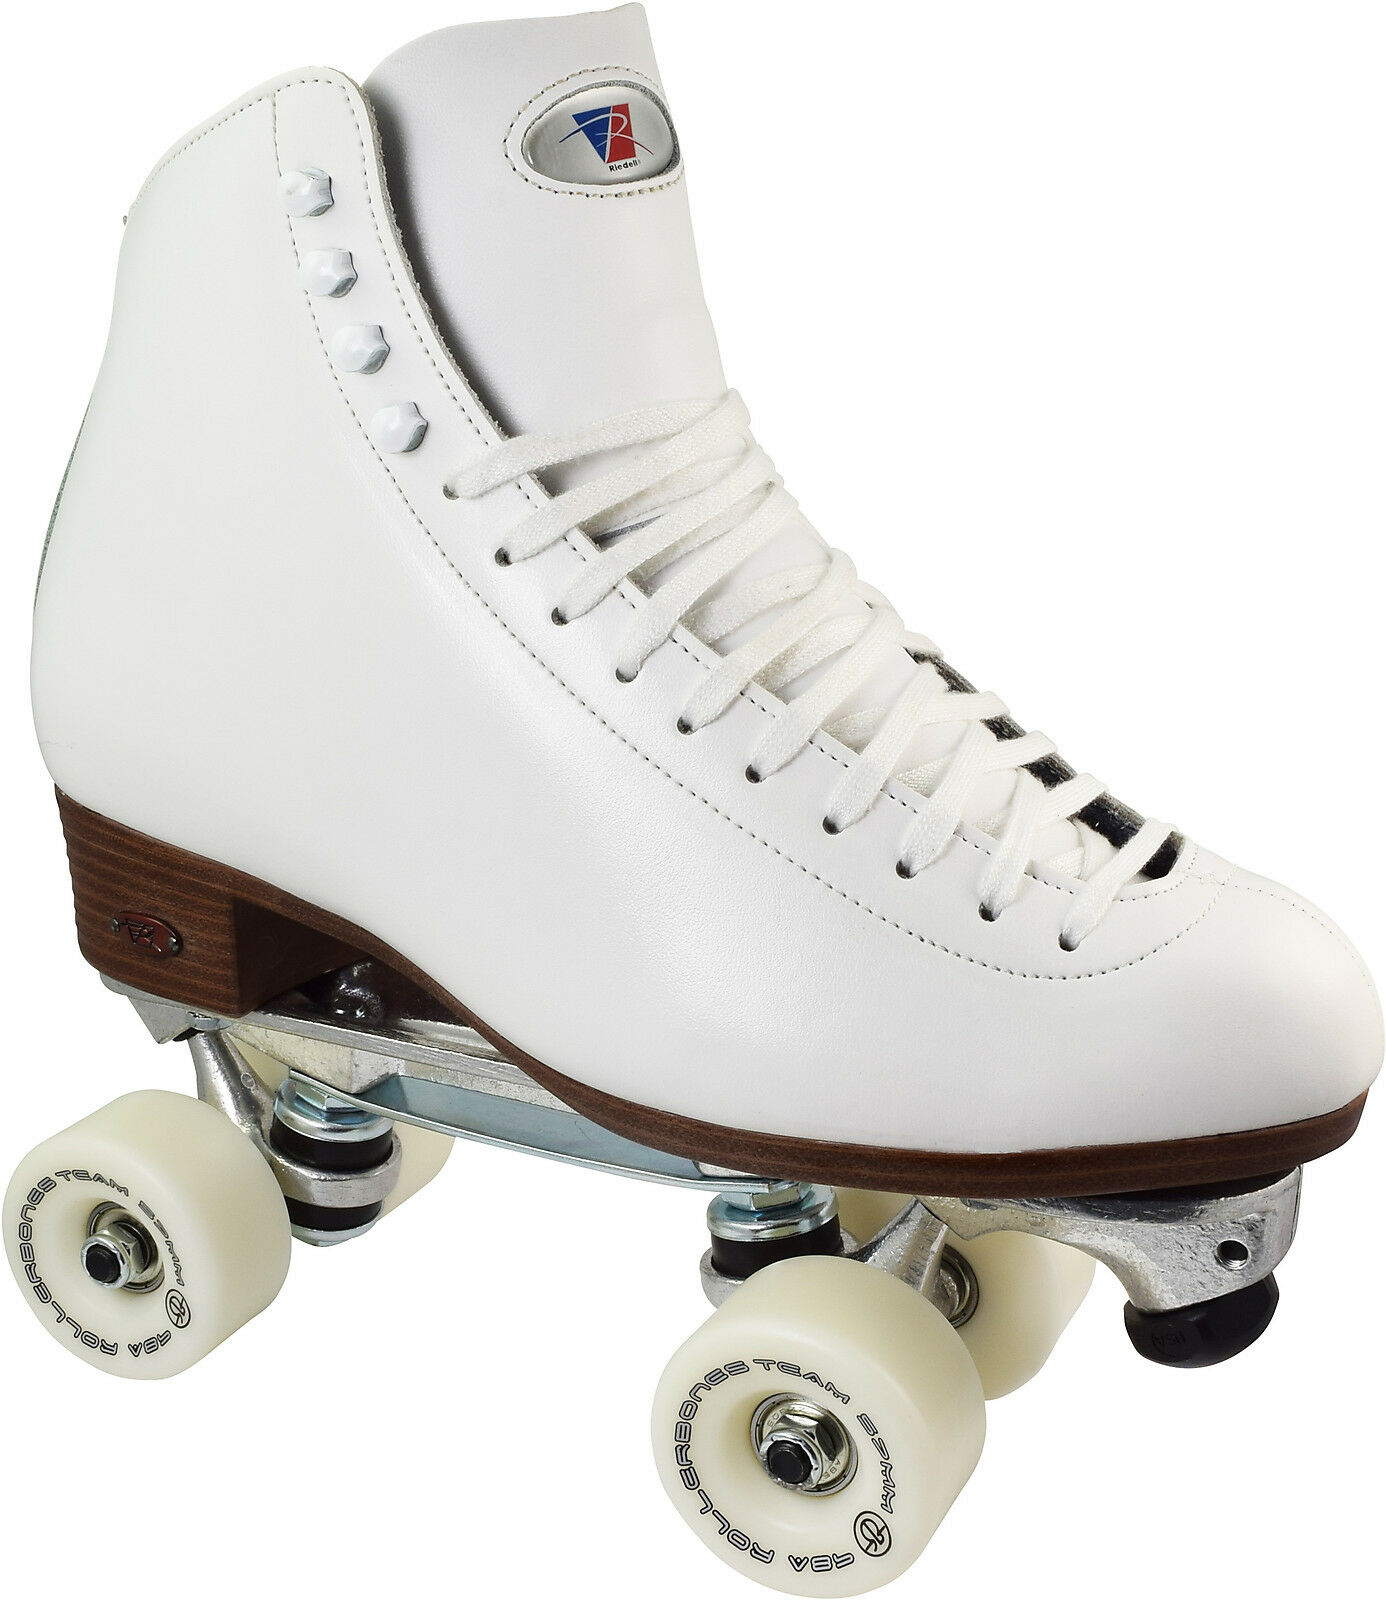 Indoor  Artistic High Top Roller S  Riedell 120 Juice - Size 4-13  up to 60% discount